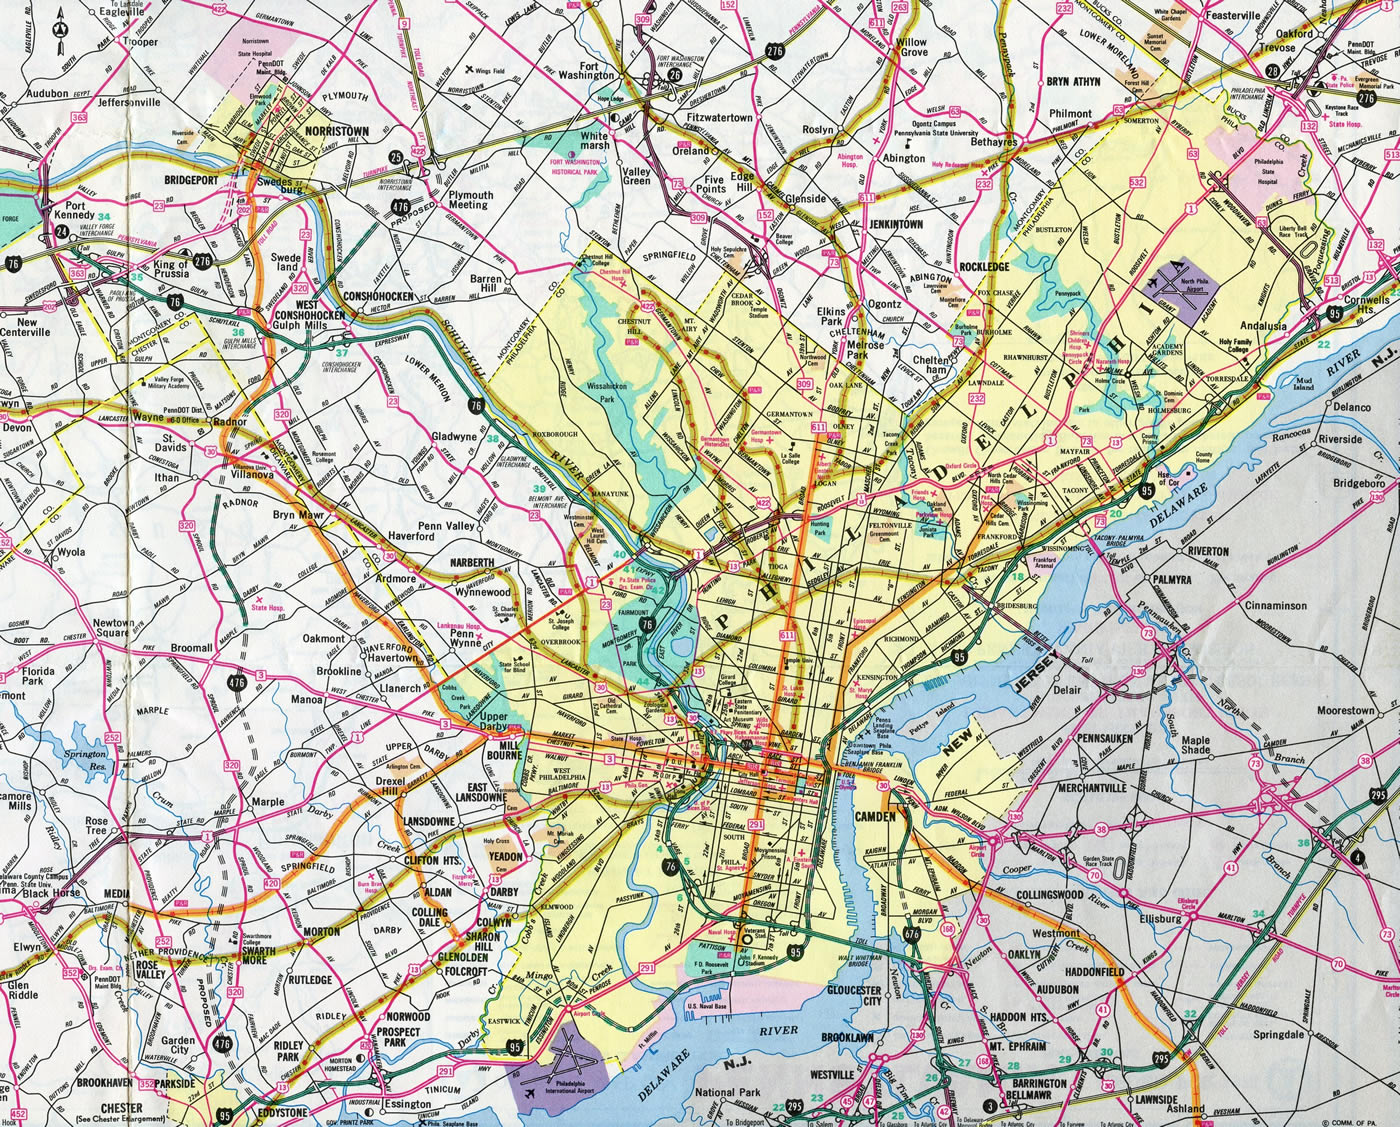 Interstate 476 Pennsylvania - Interstate-Guide.com on city of dover pa, map of 19124, map of center city pa, map of pa towns, map of west philly pa, map of cities surrounding philadelphia pennsylvania, map of phila metro area, new york city on a map of pa, road map of phila pa,